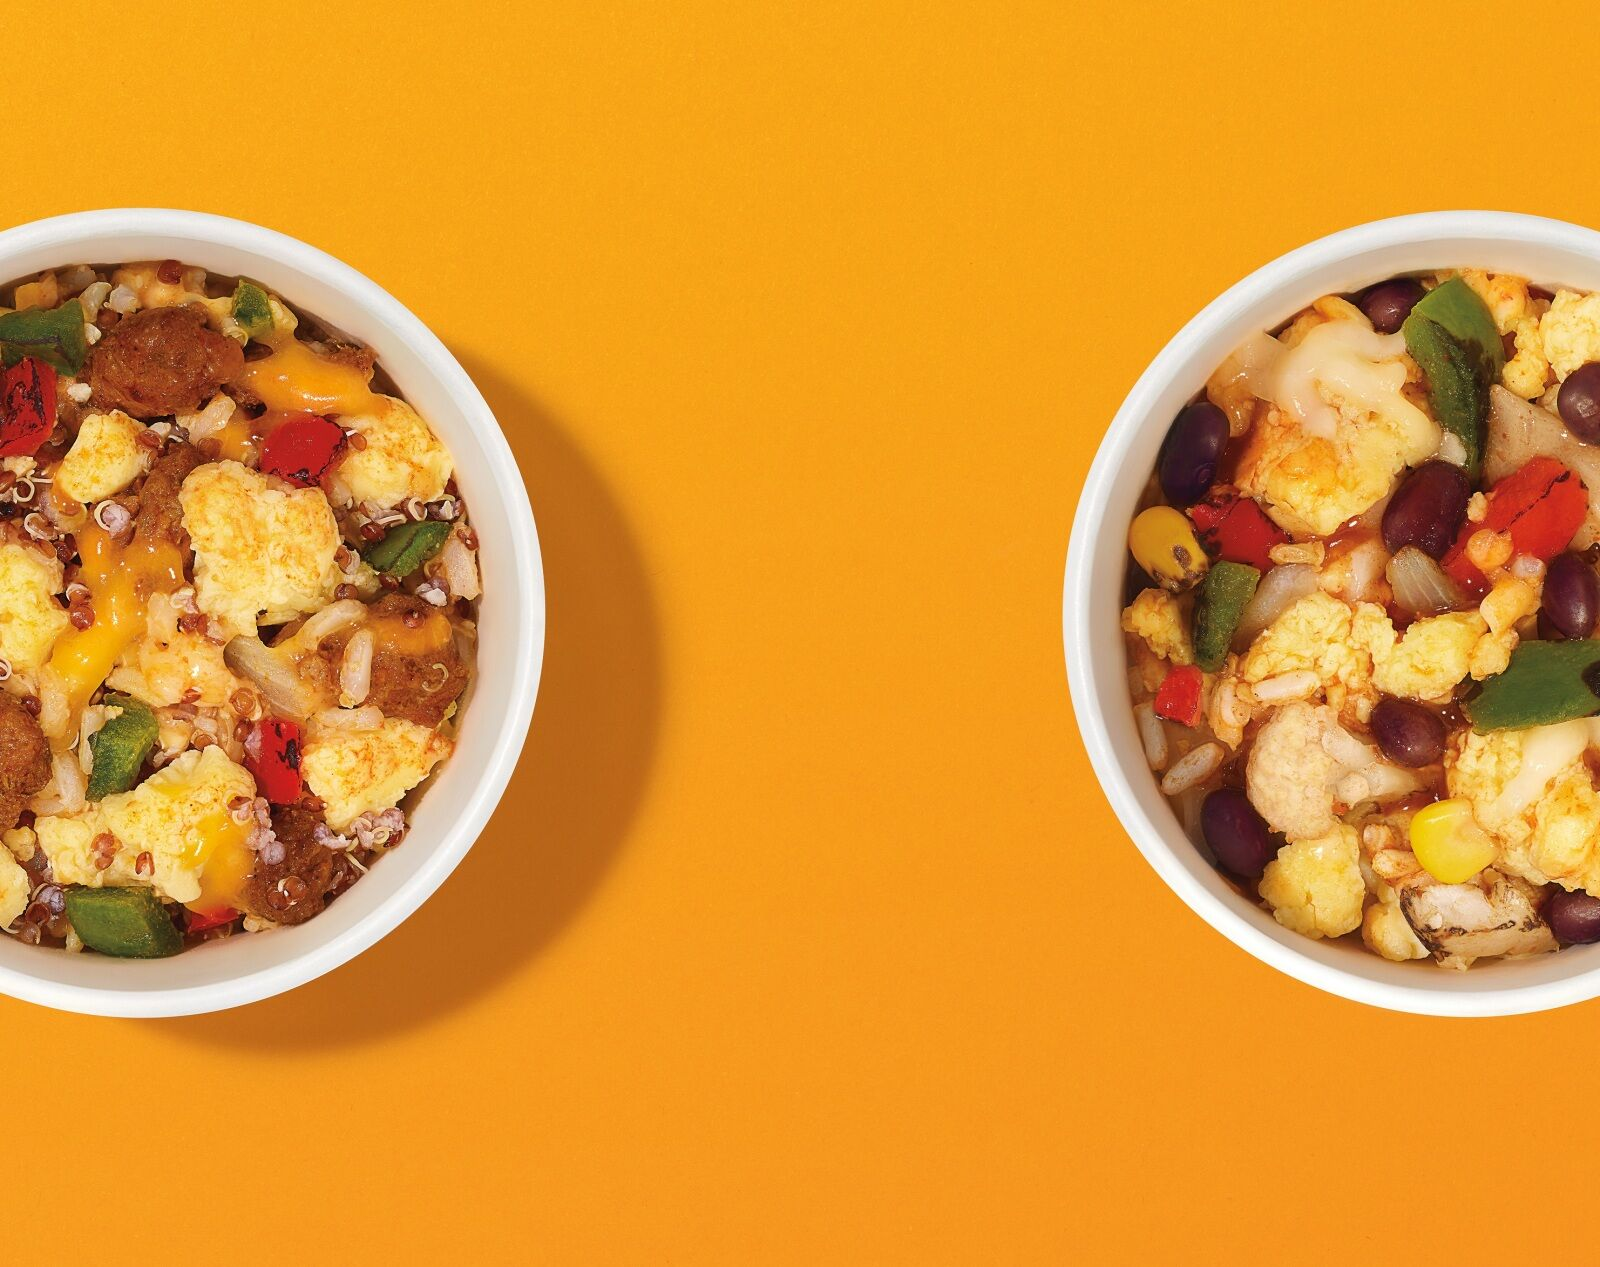 Dunkin' Burrito Bowls are here to make your life taste better